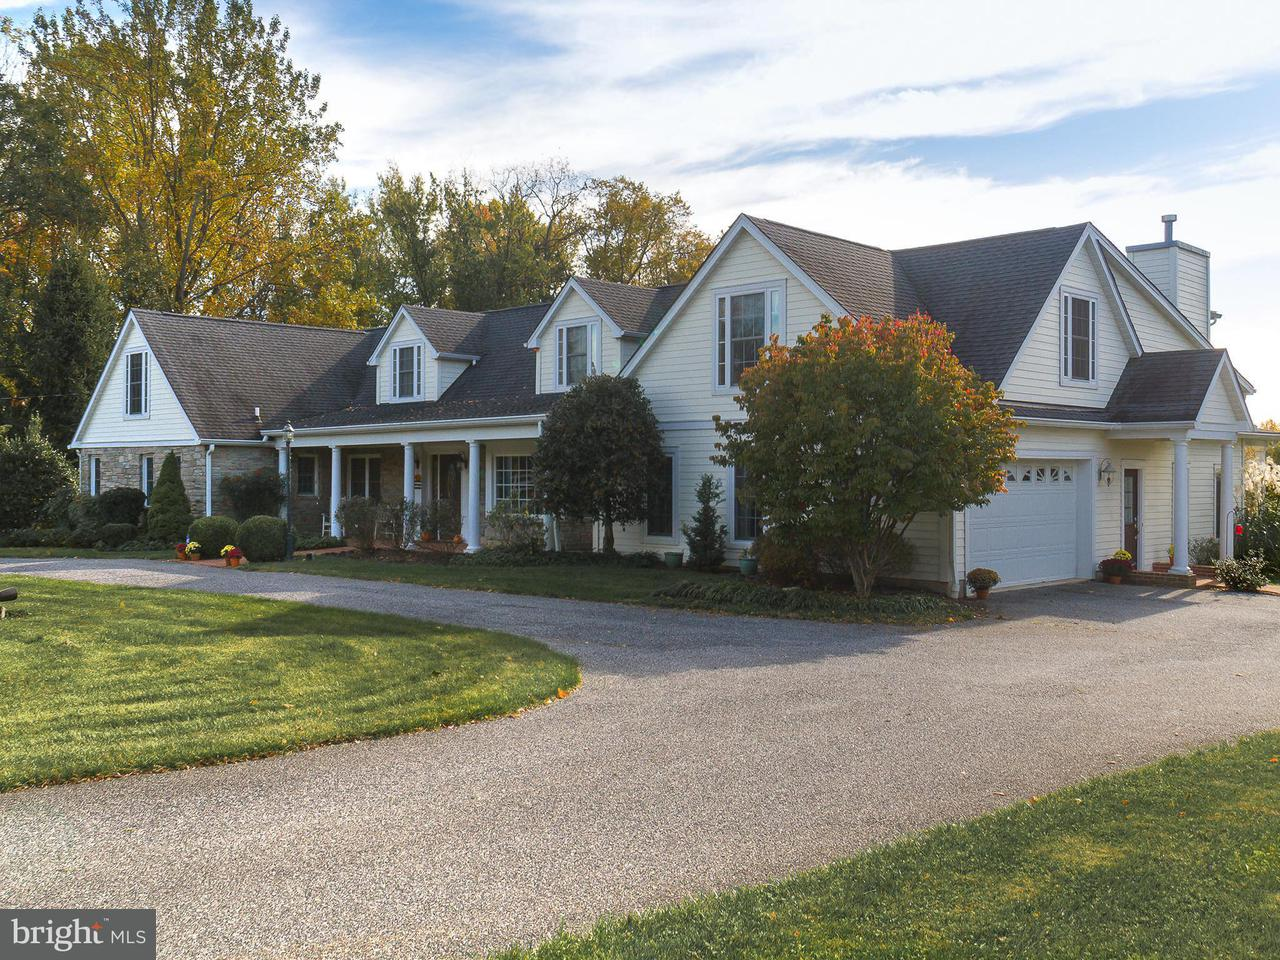 Single Family Home for Sale at 17122 TROYER Road 17122 TROYER Road Monkton, Maryland 21111 United States